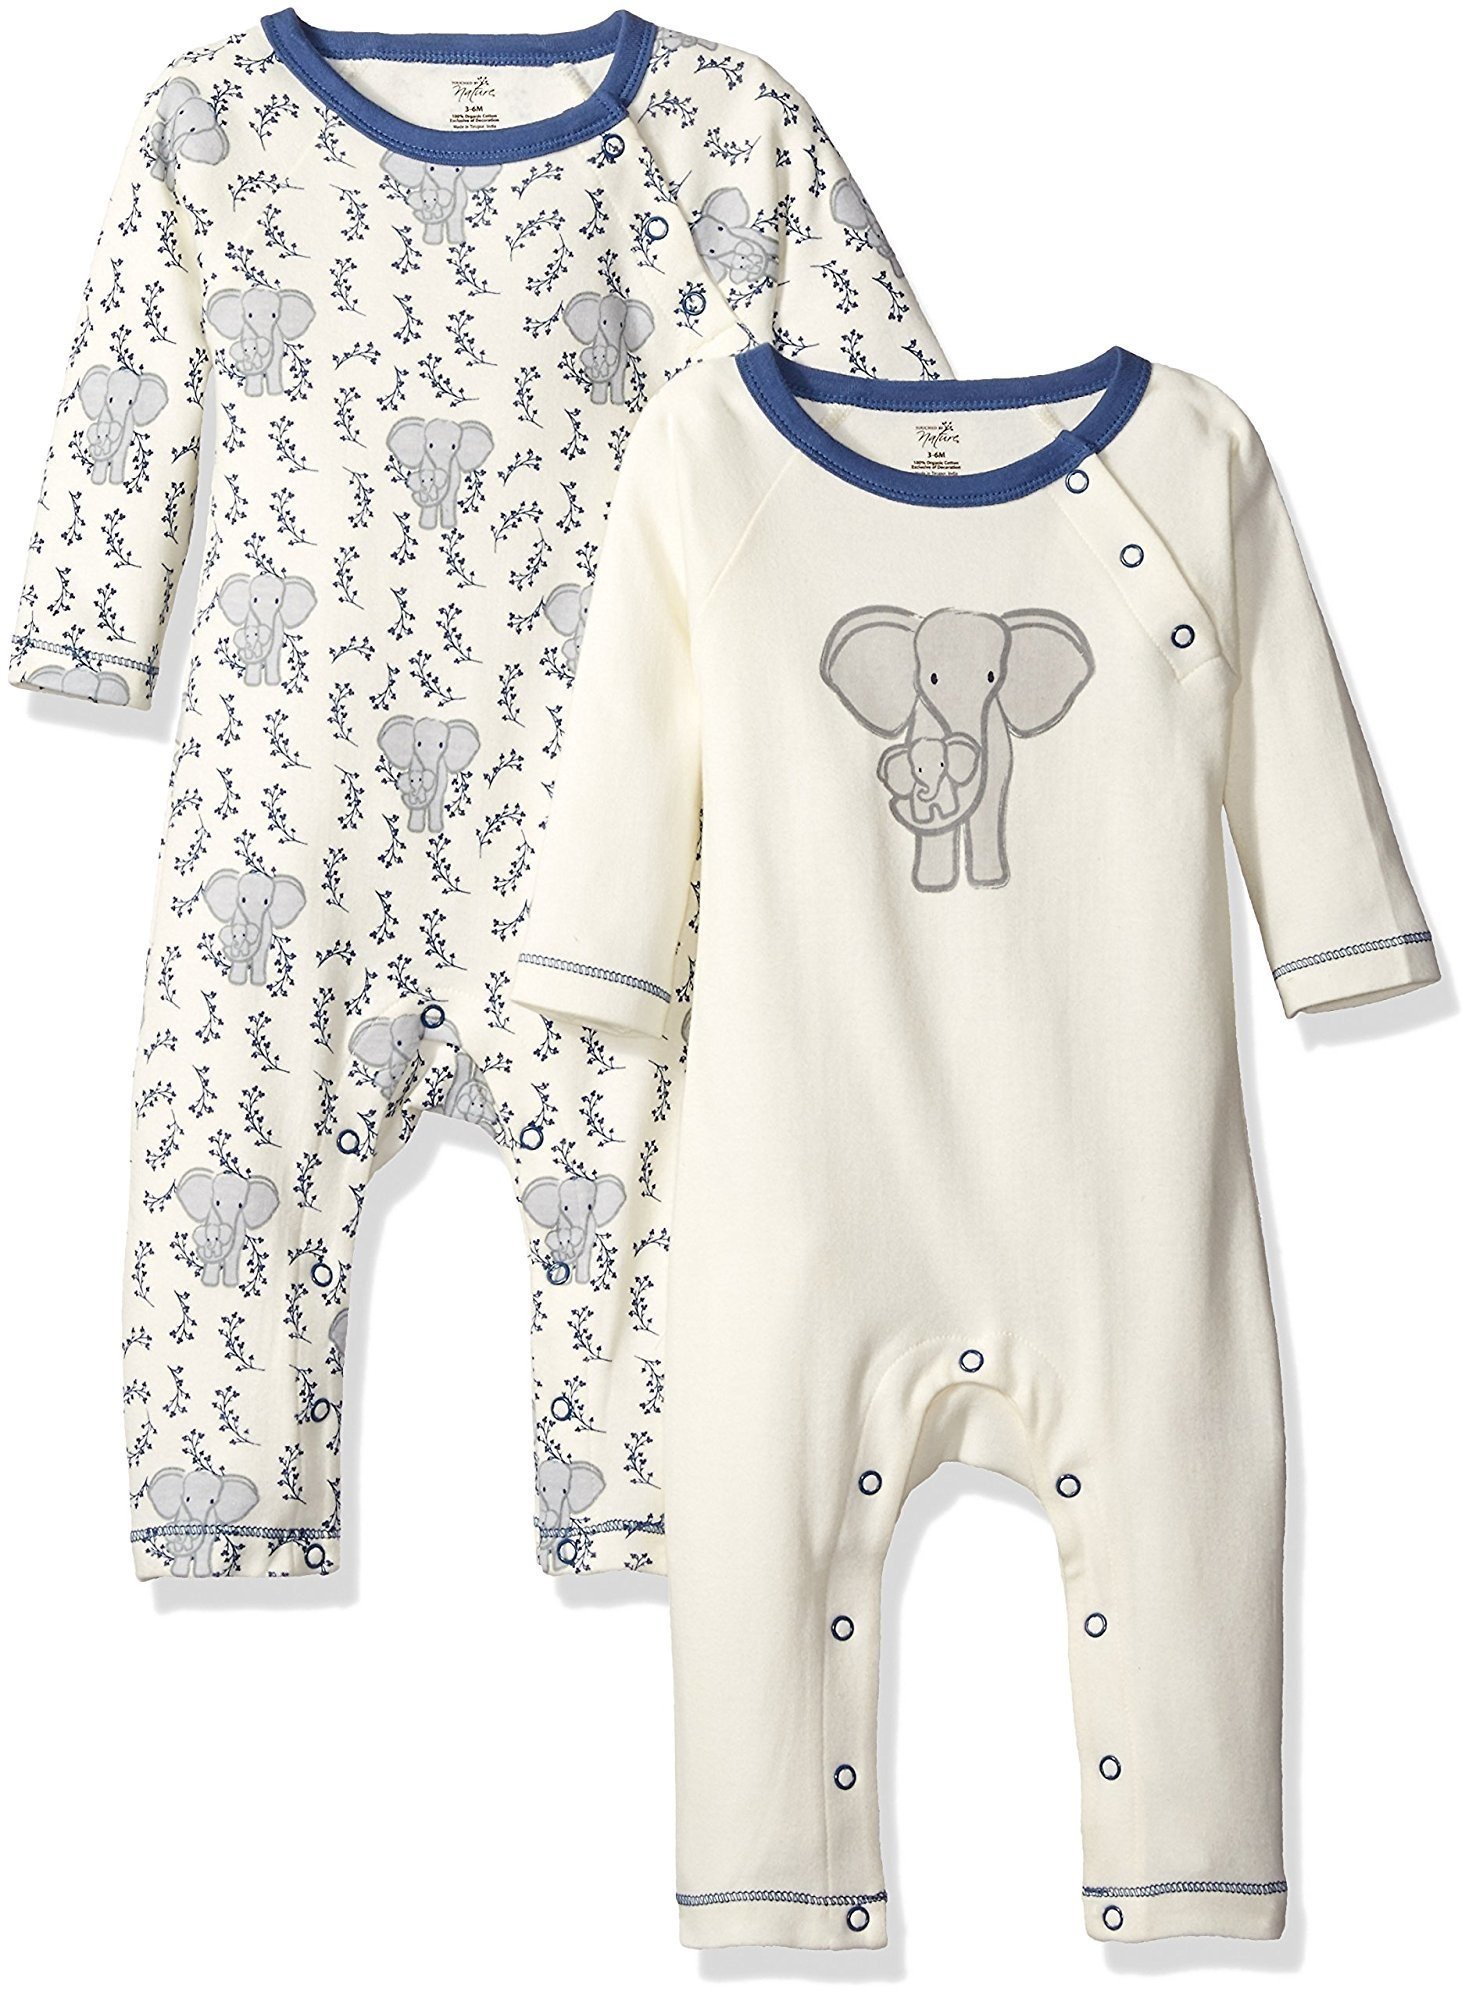 Touched by Nature Baby Organic Cotton Union Suit 2-Pack, Elephant, 0-3 Months